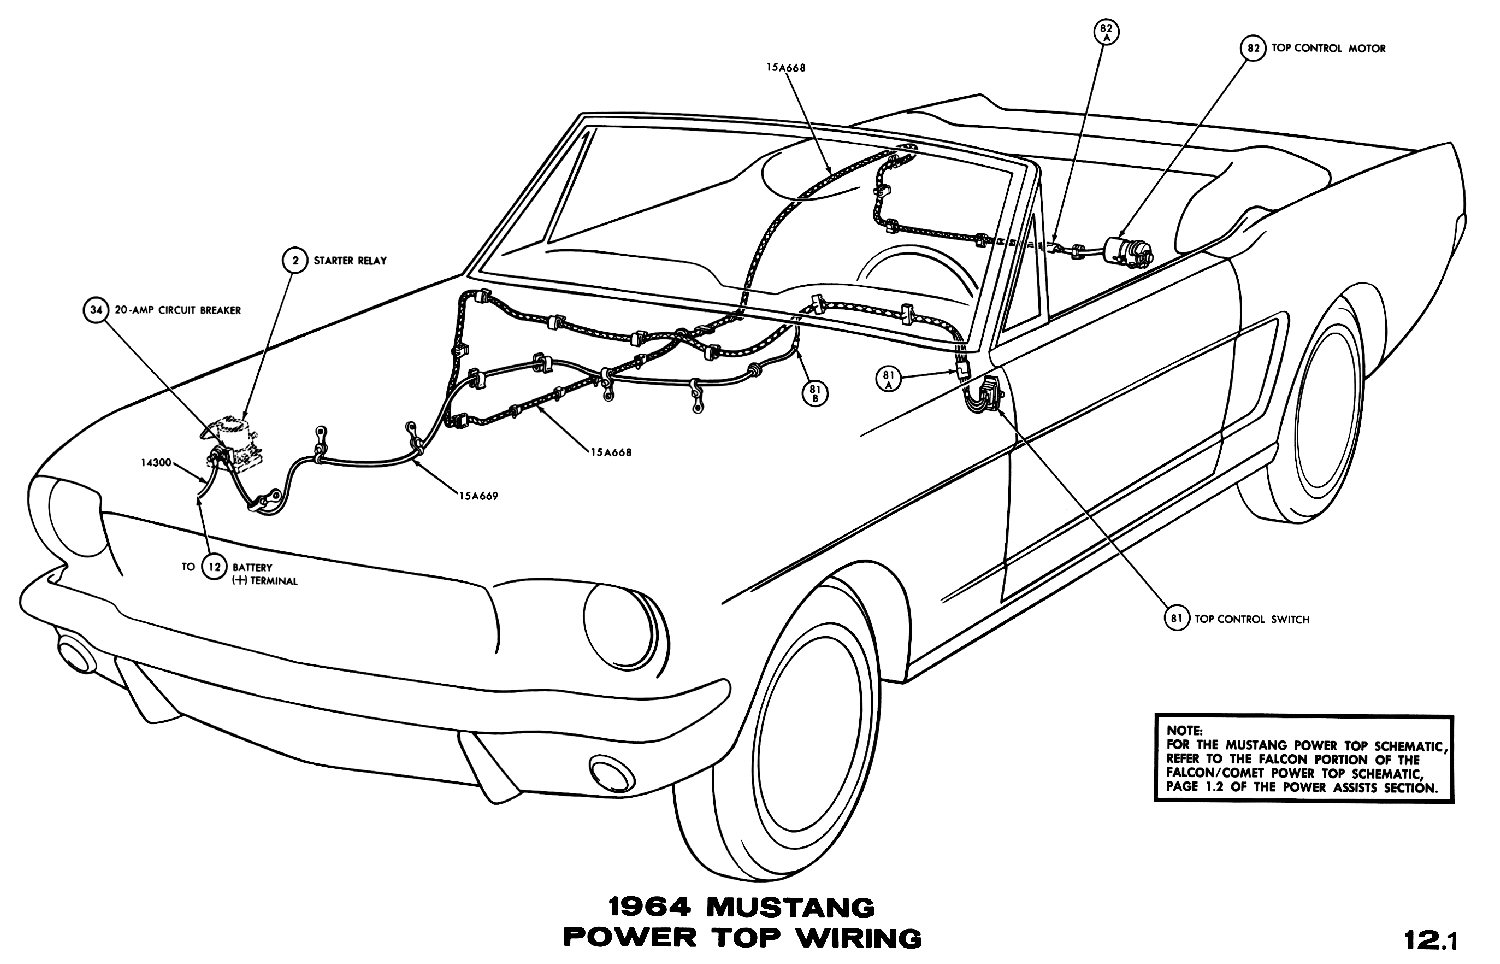 hight resolution of 1964 mustang power top pictorial or schematic